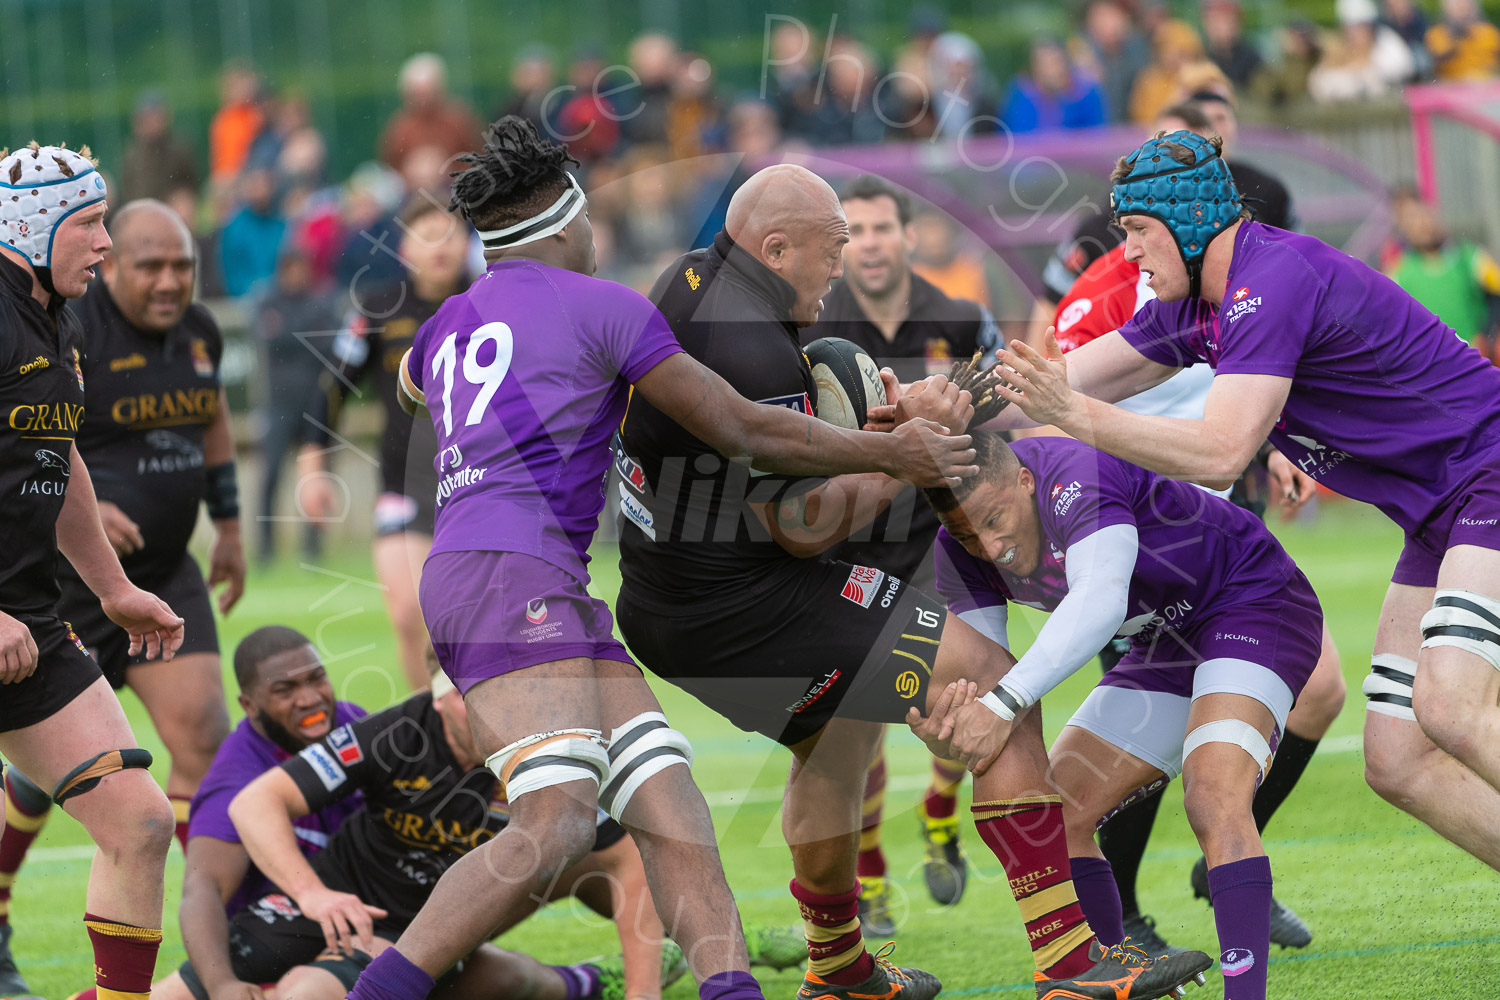 20190427 Loughborough vs Ampthill 1st XV #6137